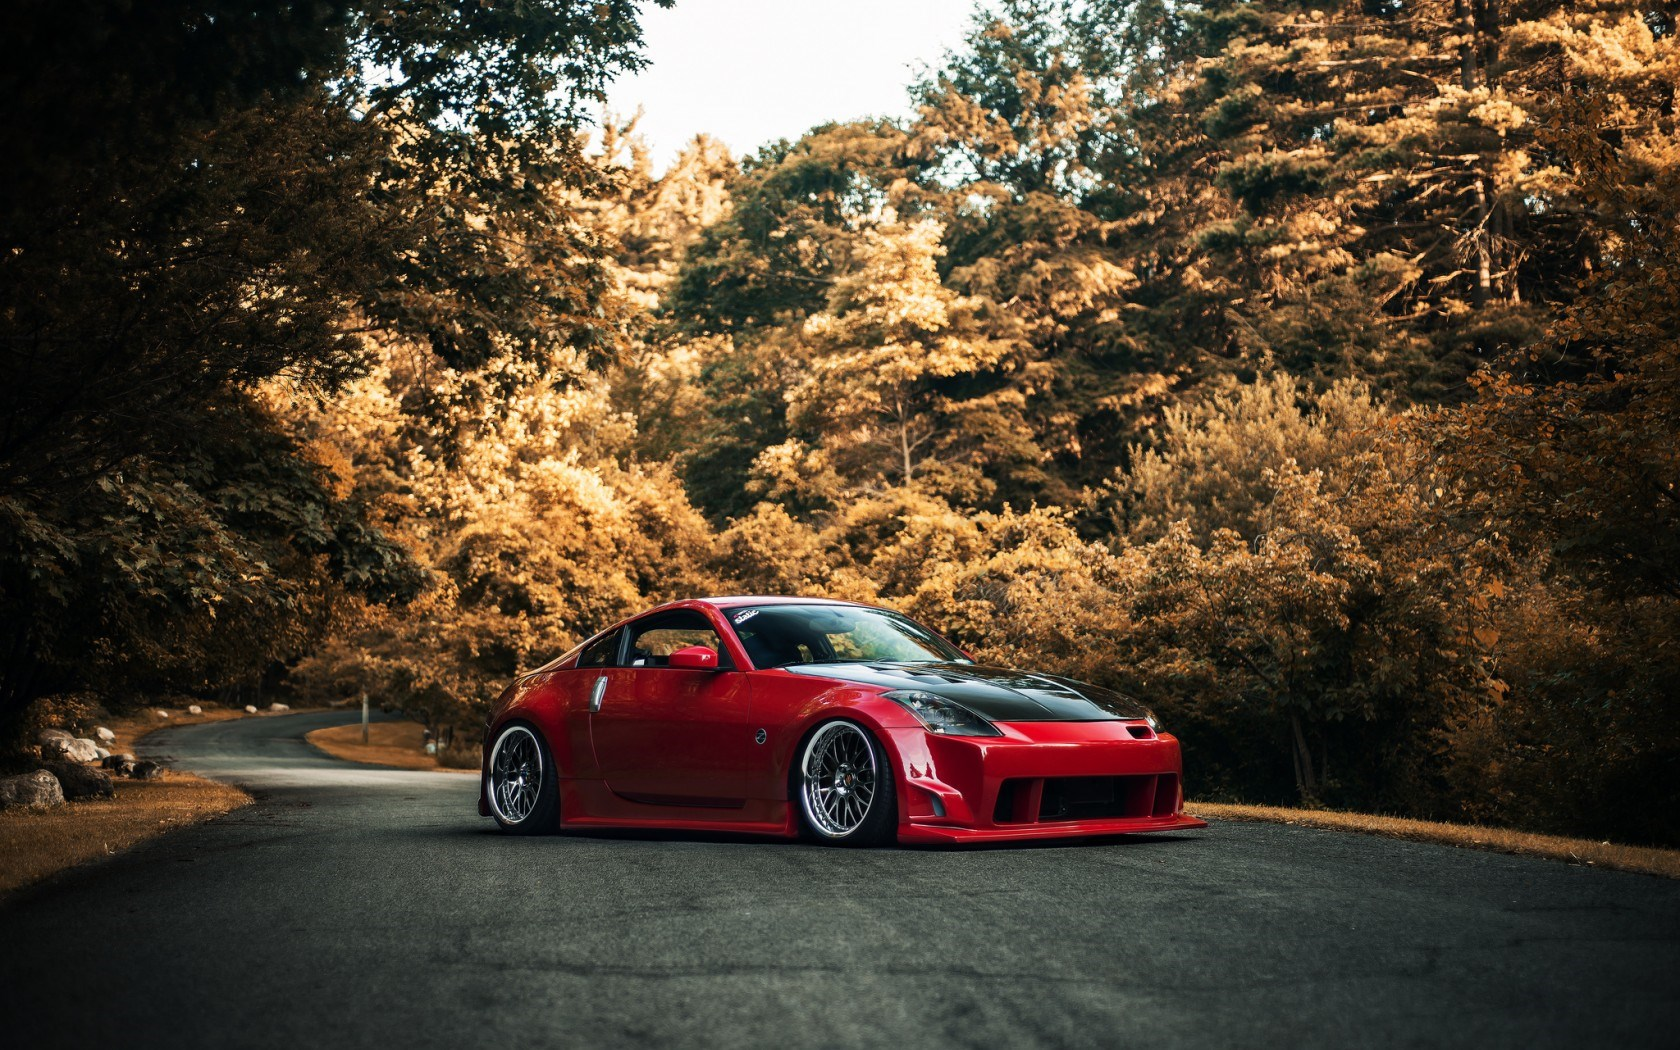 Nissan 350Z Wallpaper And Background Image